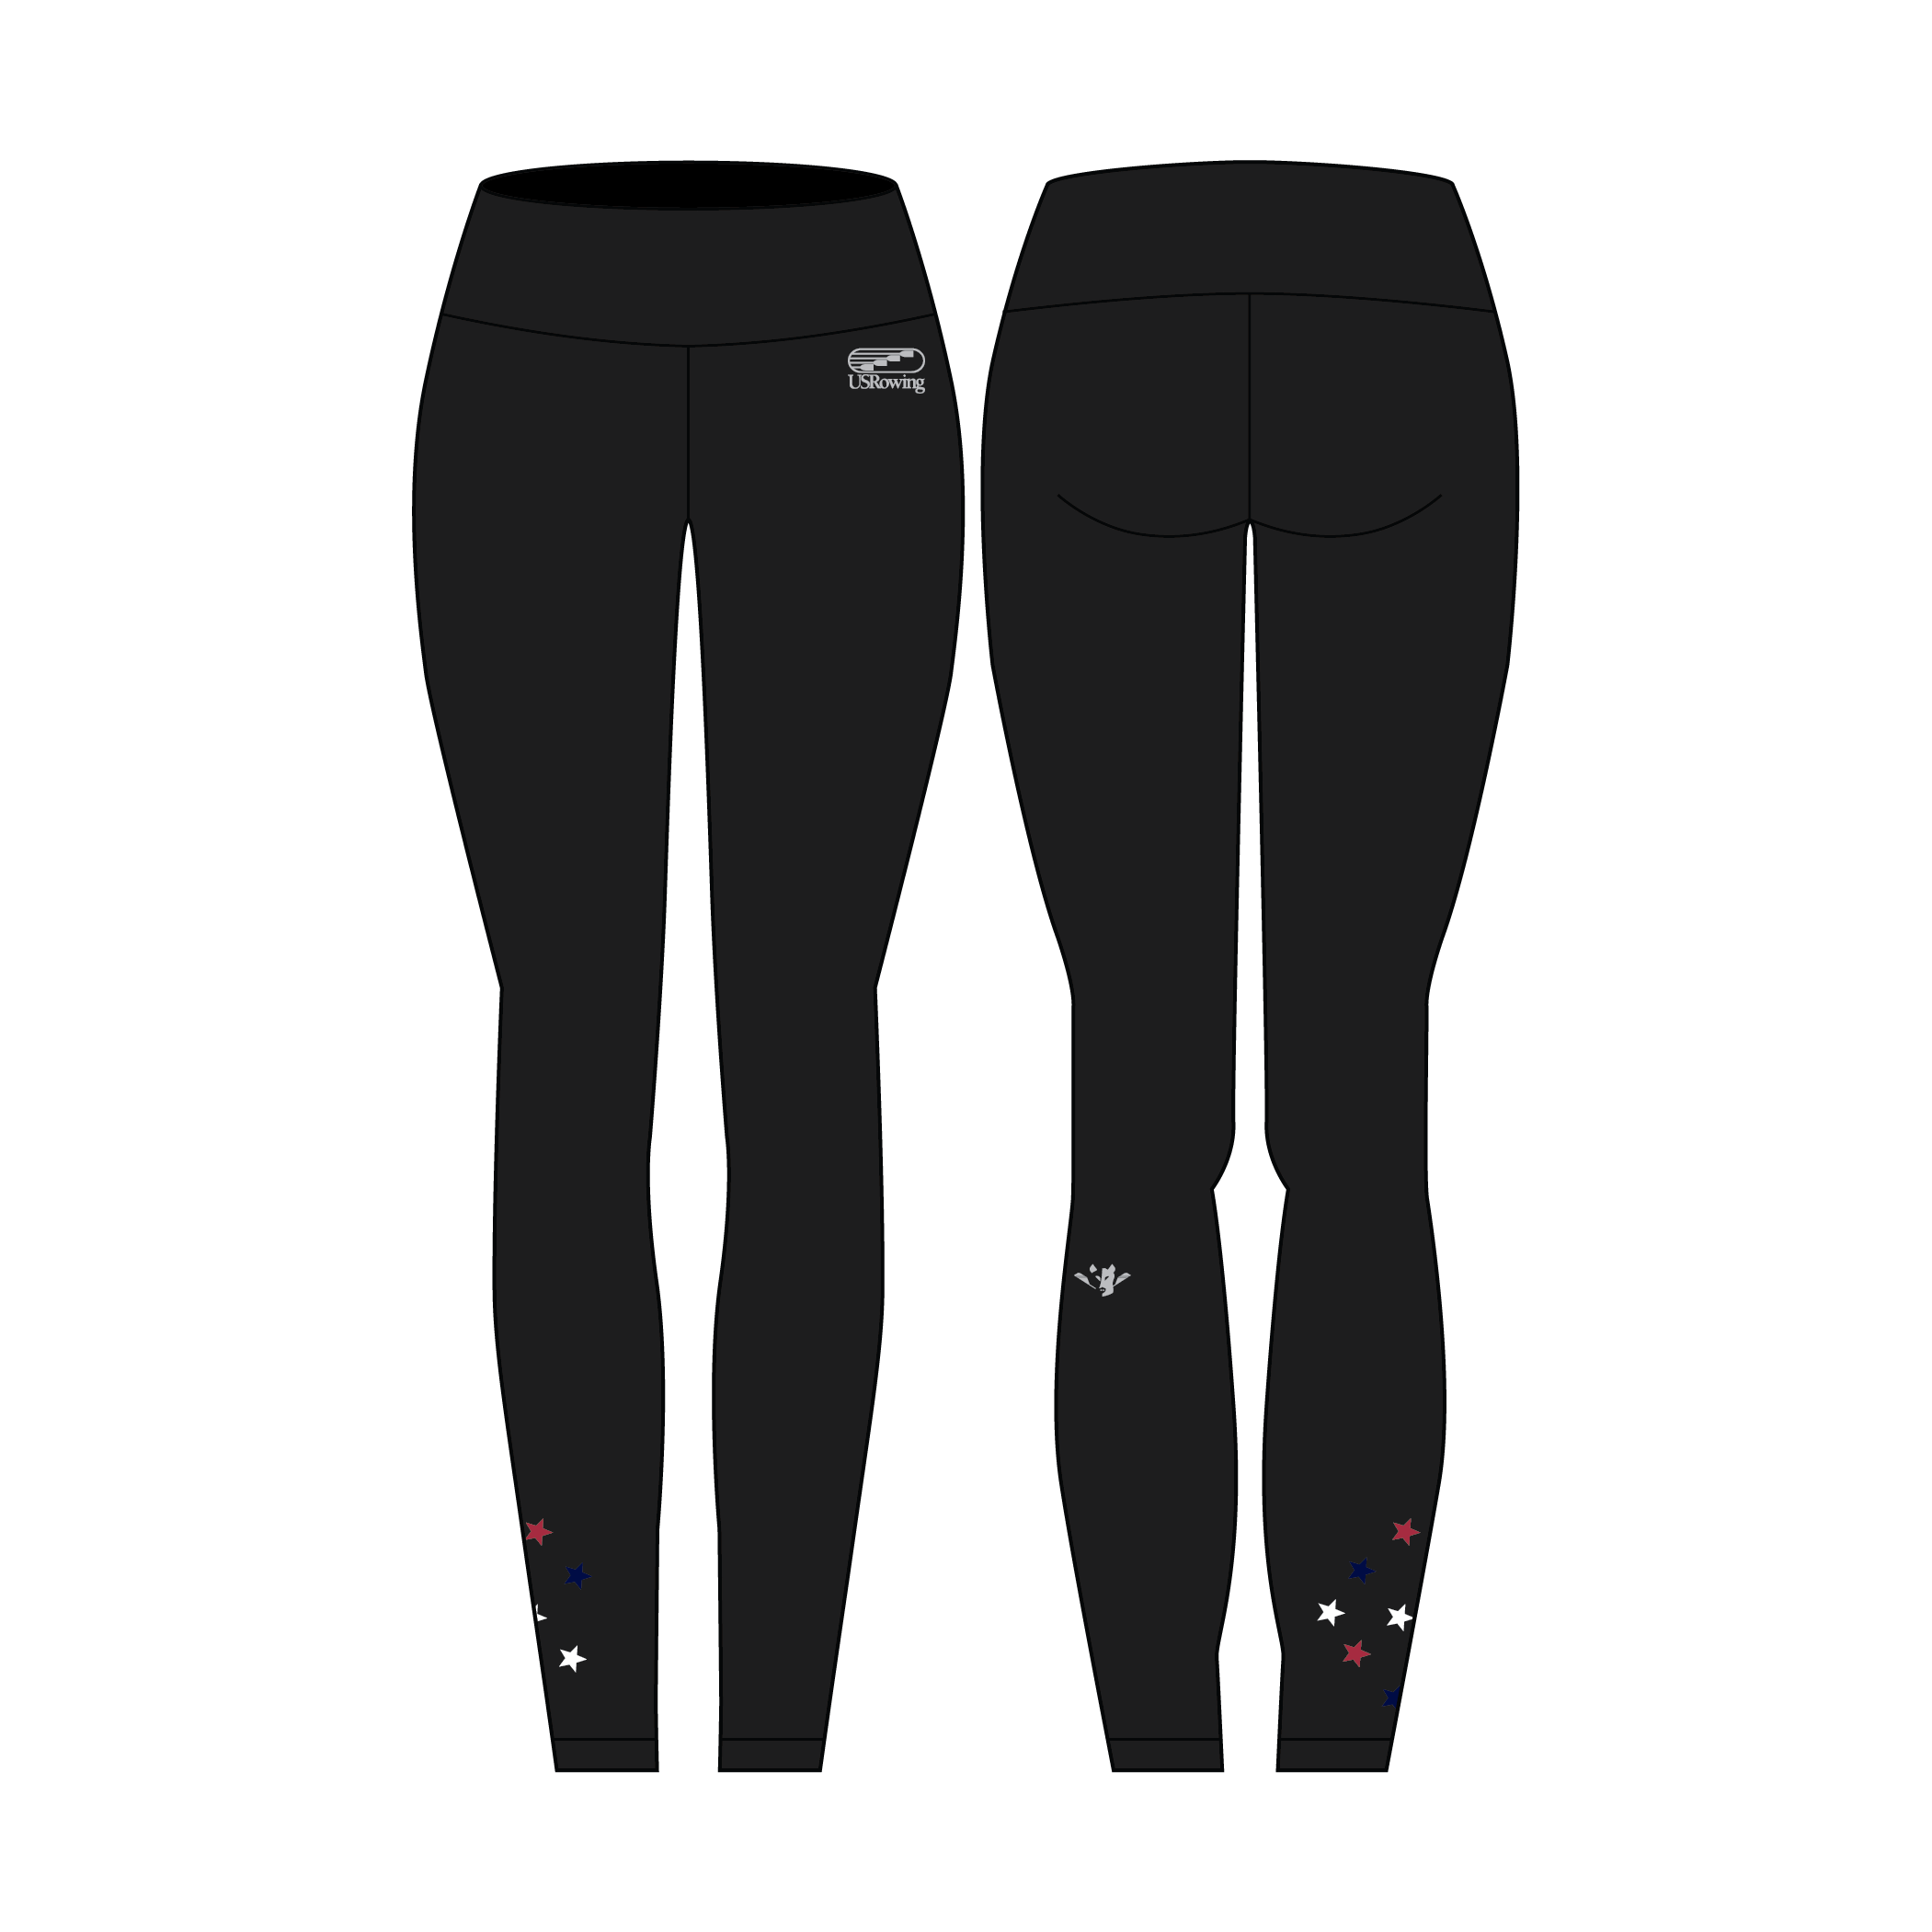 ca84dae16d9e09 USR Women's Full Length Legging - JL Racing